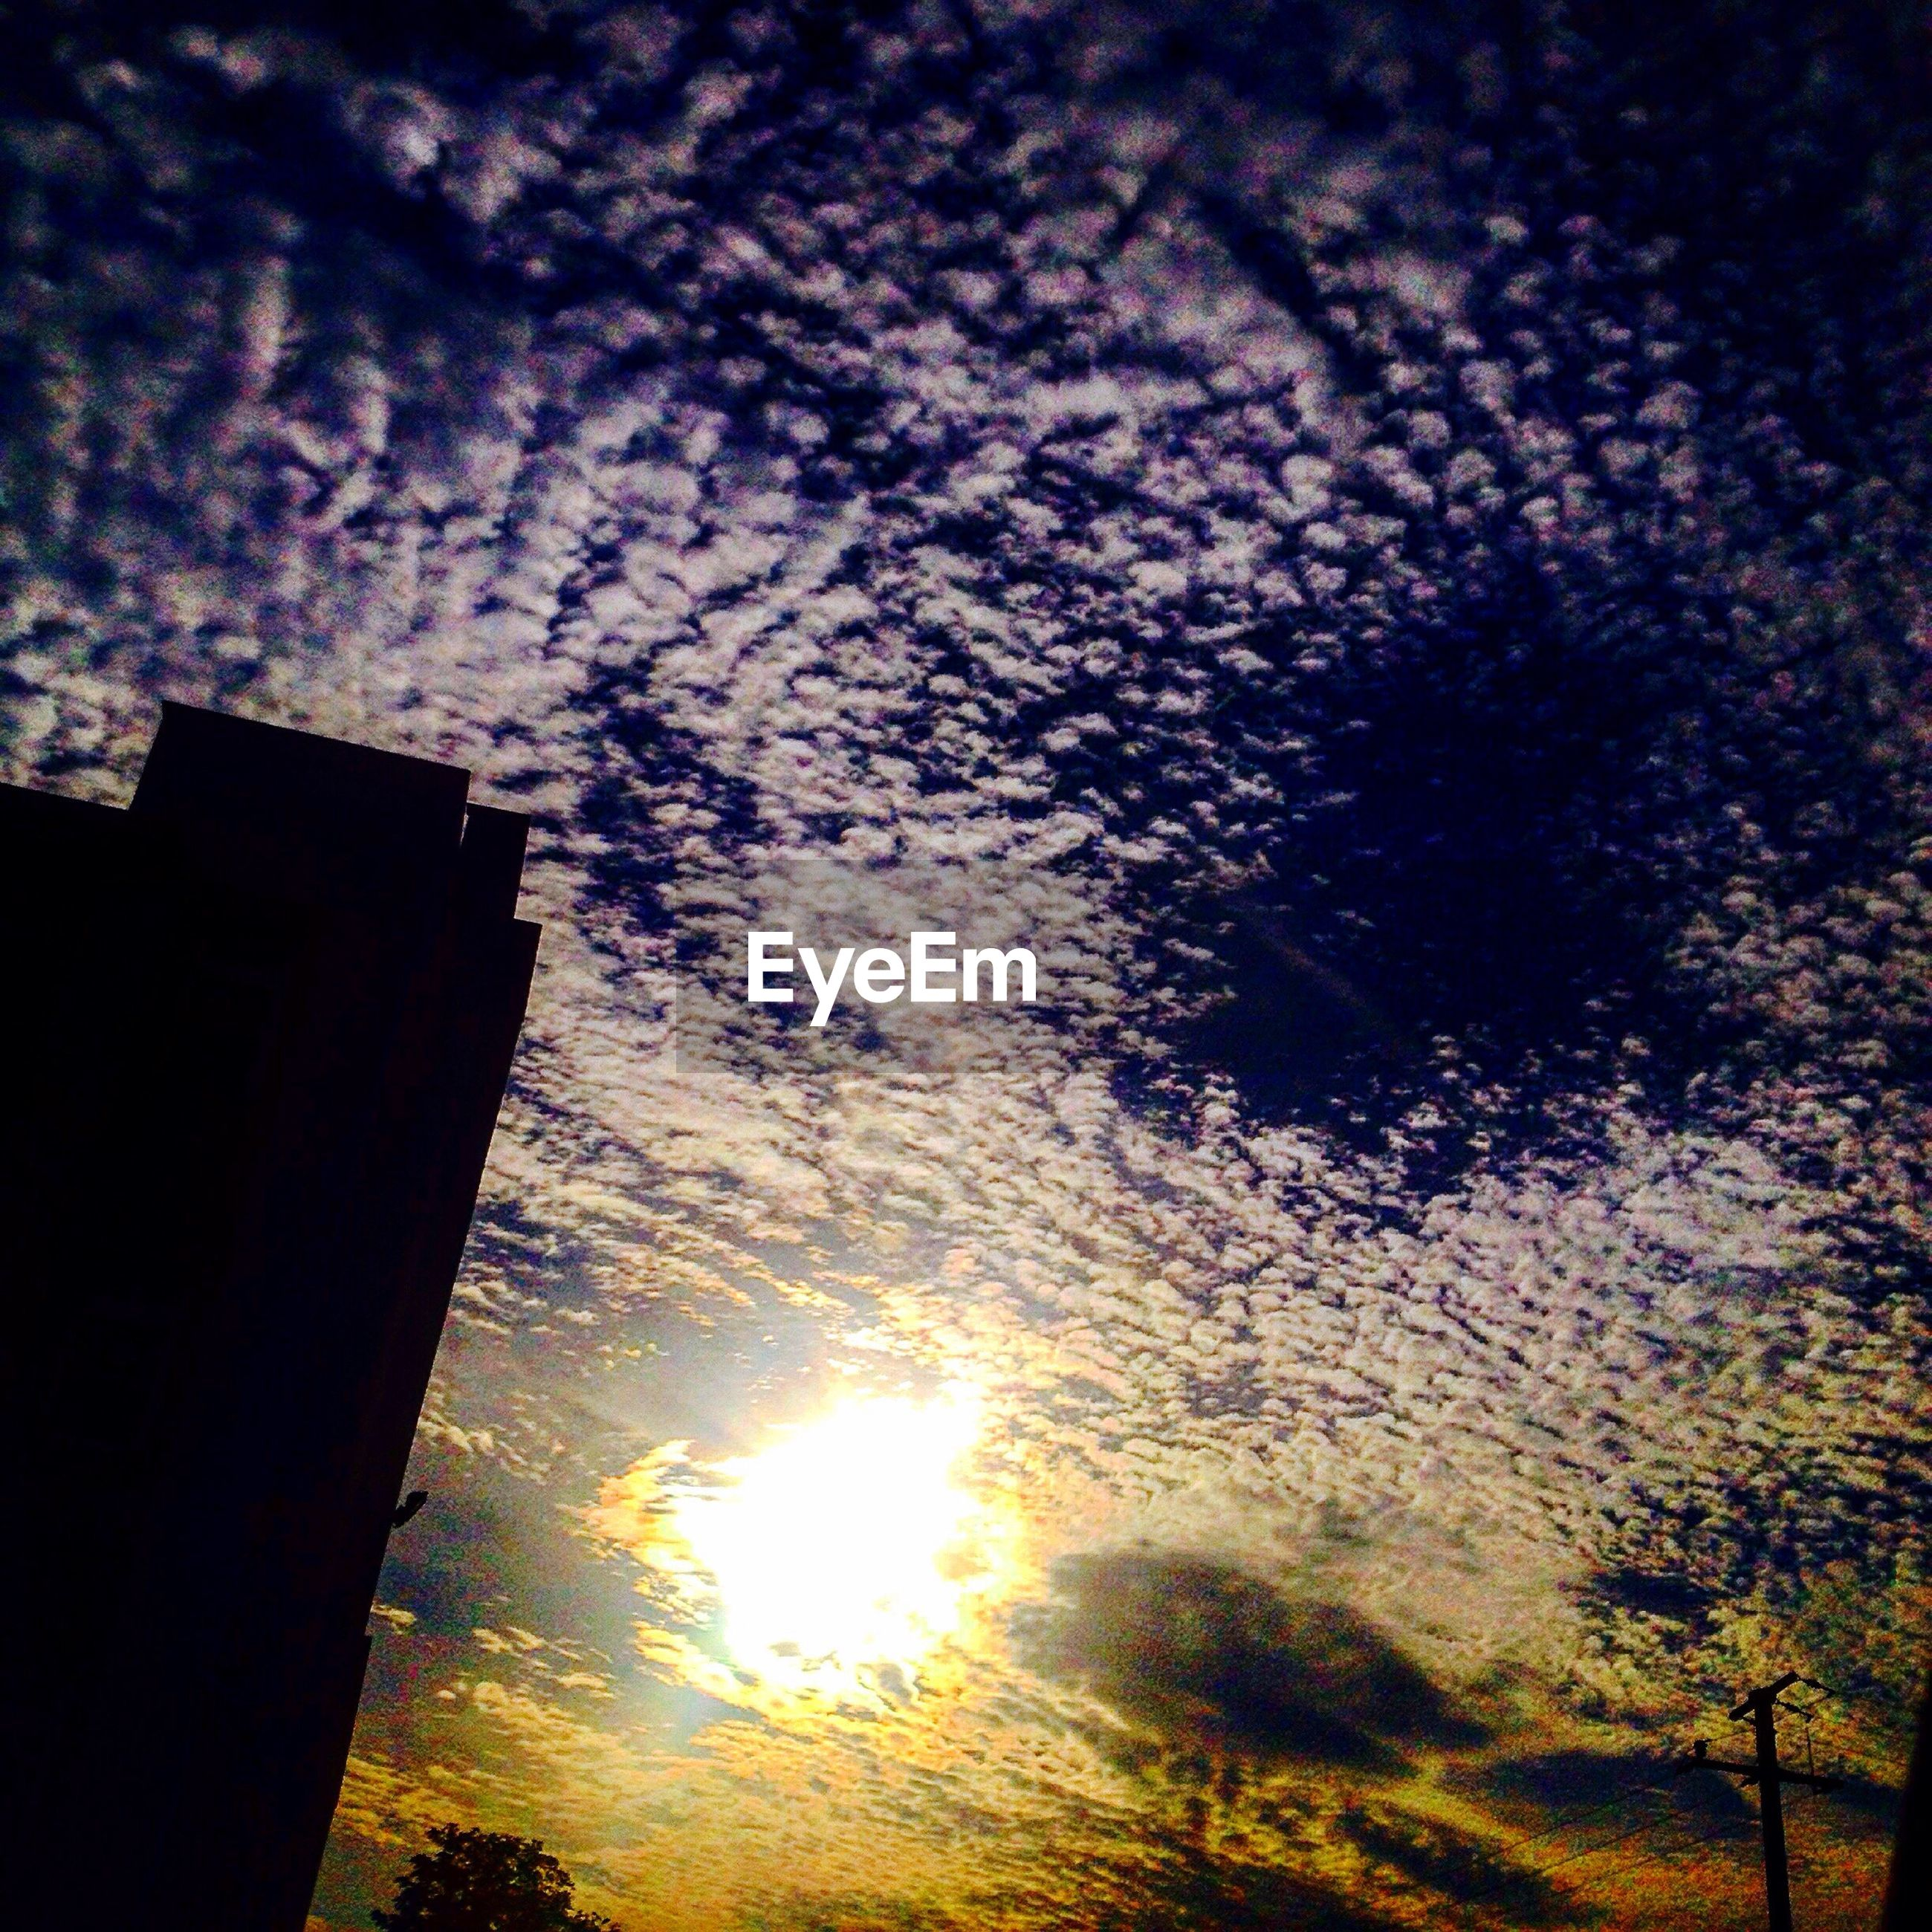 sun, low angle view, sunset, silhouette, sky, sunlight, architecture, sunbeam, cloud, branch, building exterior, outdoors, nature, cloud - sky, scenics, tranquility, beauty in nature, tranquil scene, high section, lens flare, no people, cloudy